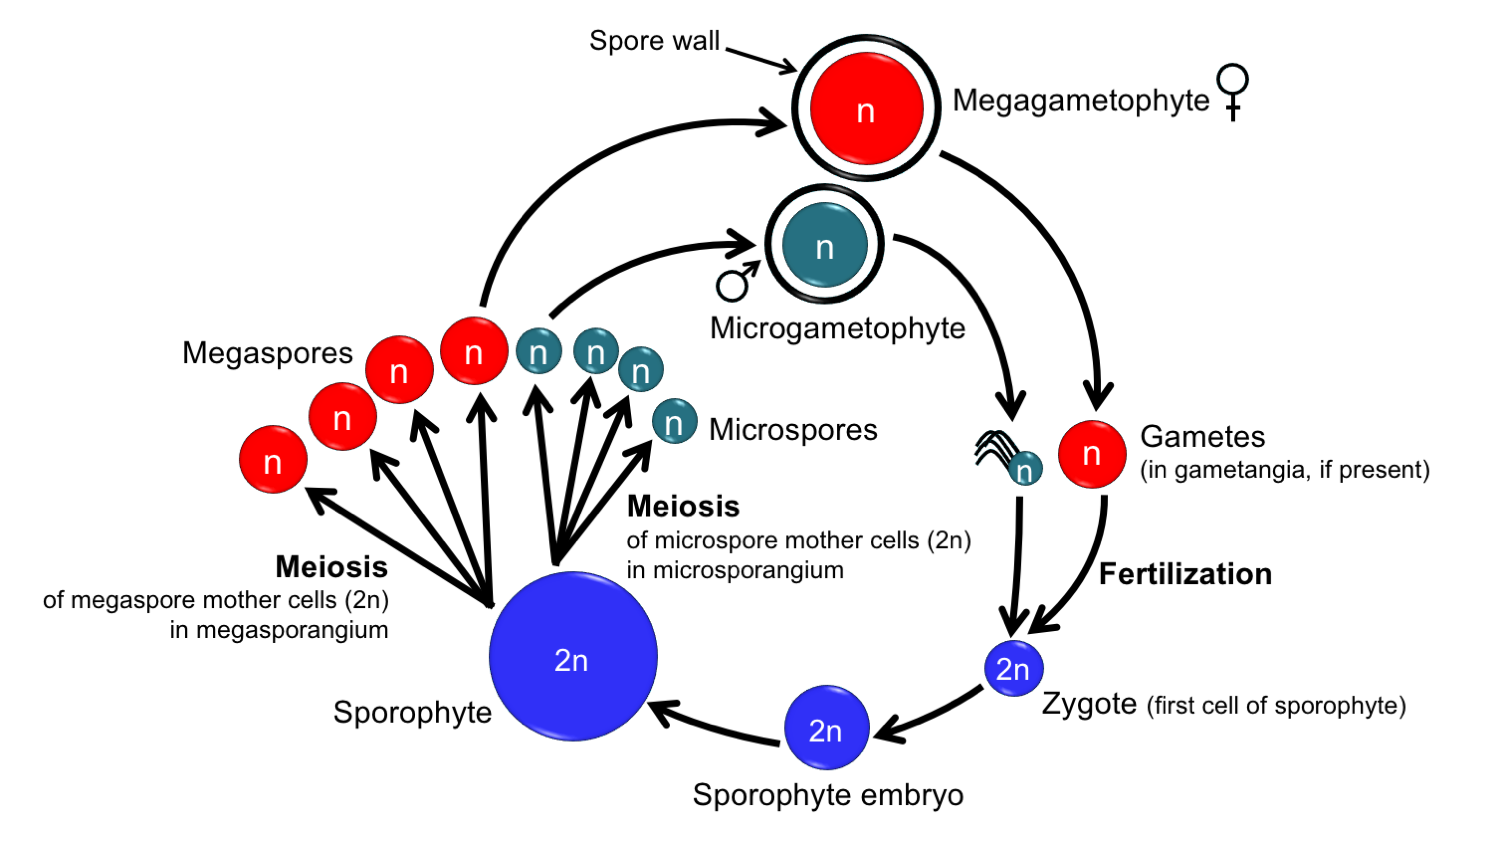 Diagram showing the generalized life cycle of a heterosporous plant.